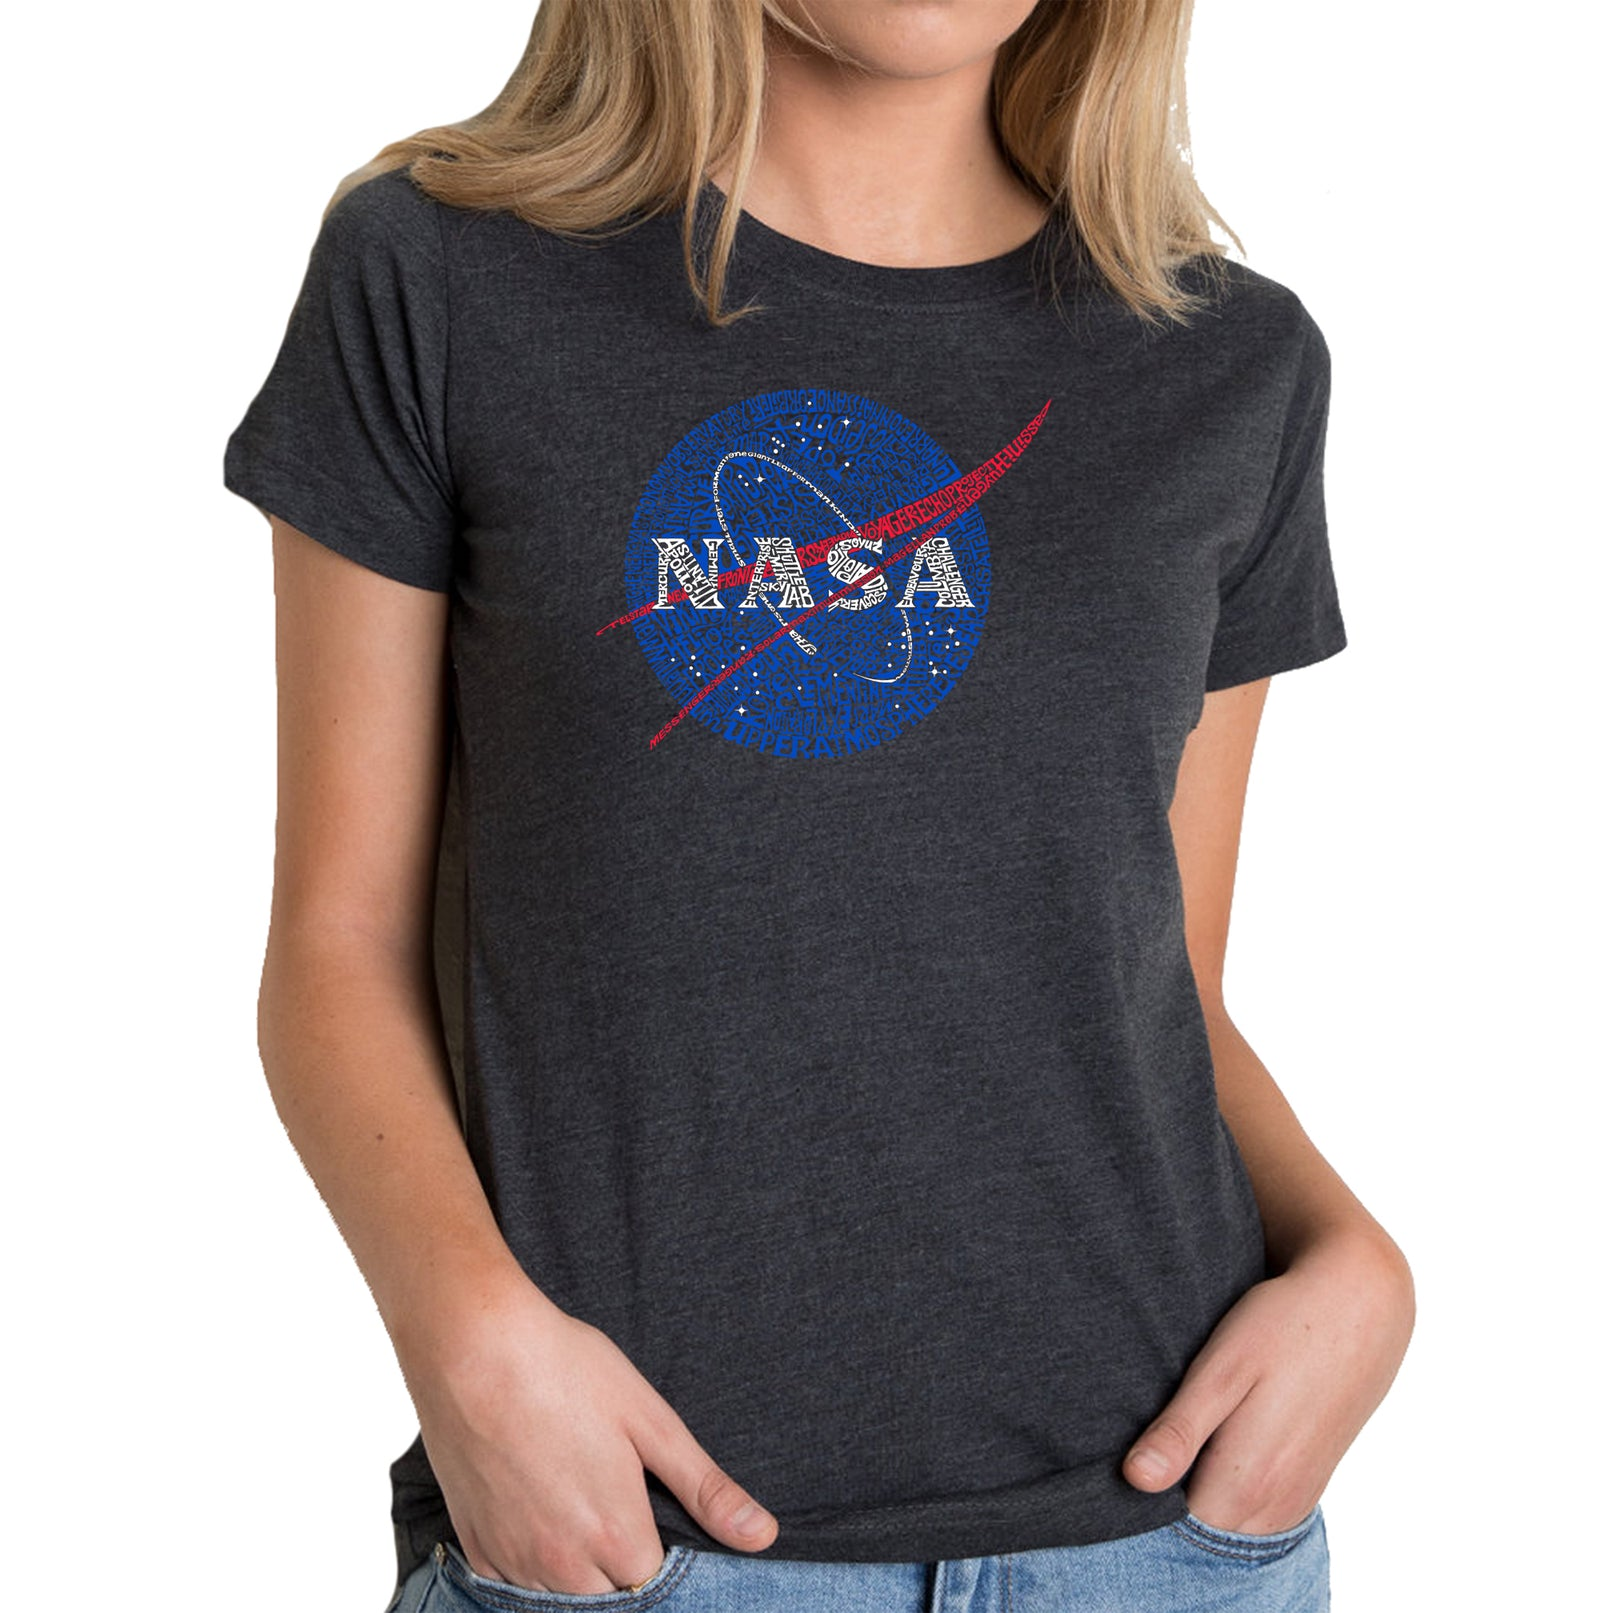 Women's Premium Blend Word Art T-shirt - NASA's Most Notable Missions